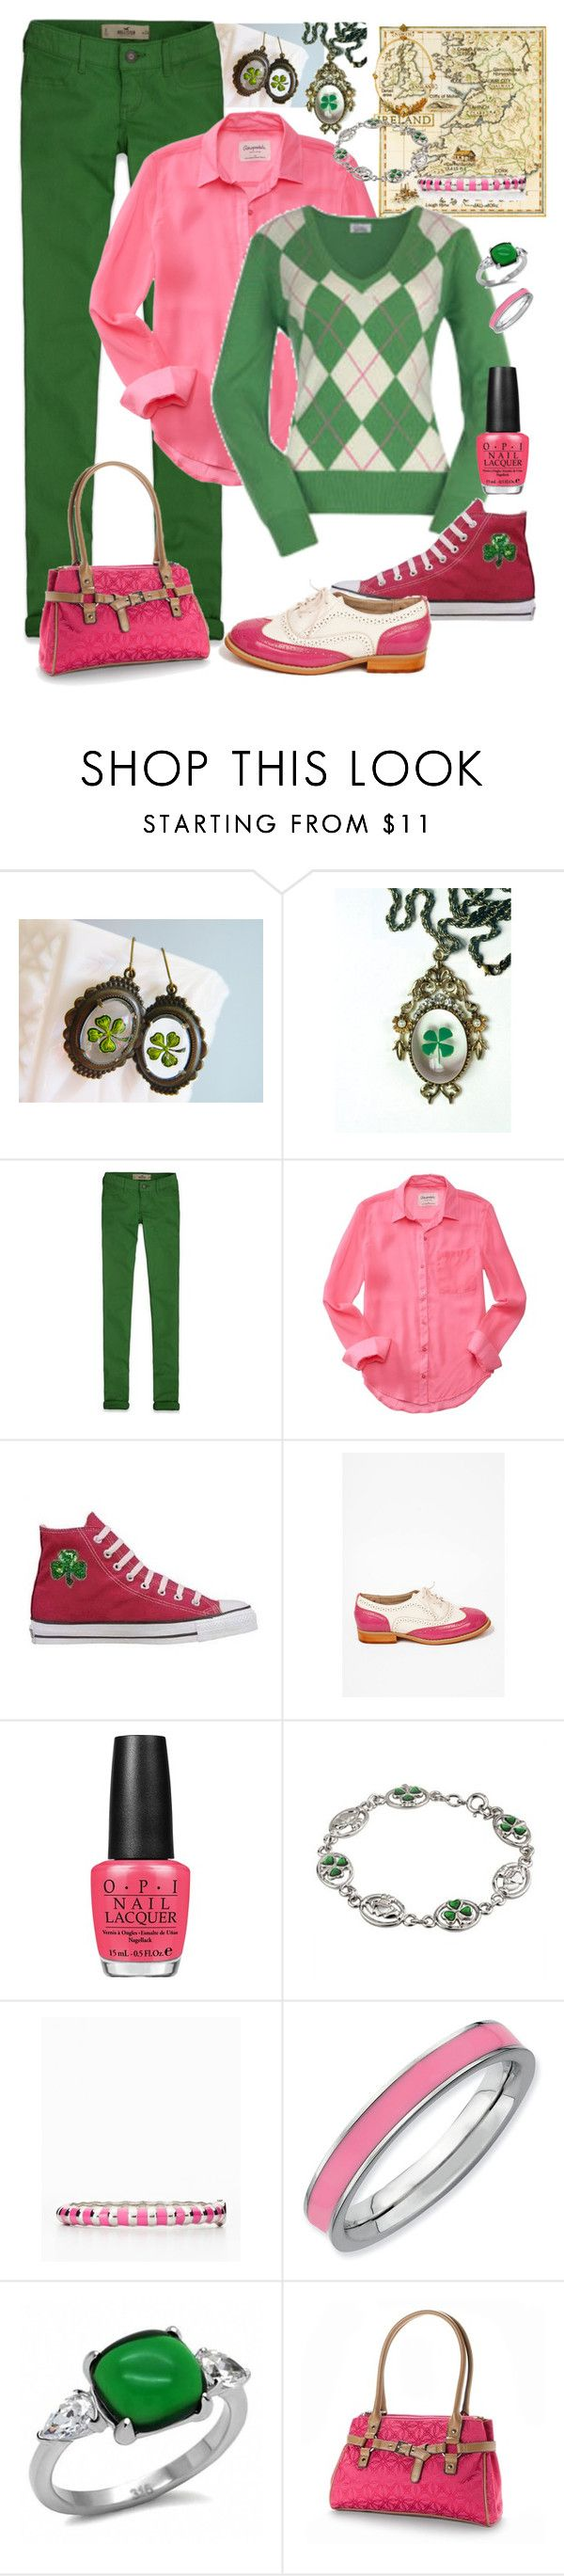 """""""Pink & Green Irish Preppy"""" by teri-vanselous ❤ liked on Polyvore featuring CO, Hollister Co., Aéropostale, Converse, OPI, Ann Taylor, Expressions, Fantasy Jewelry Box and Croft & Barrow"""